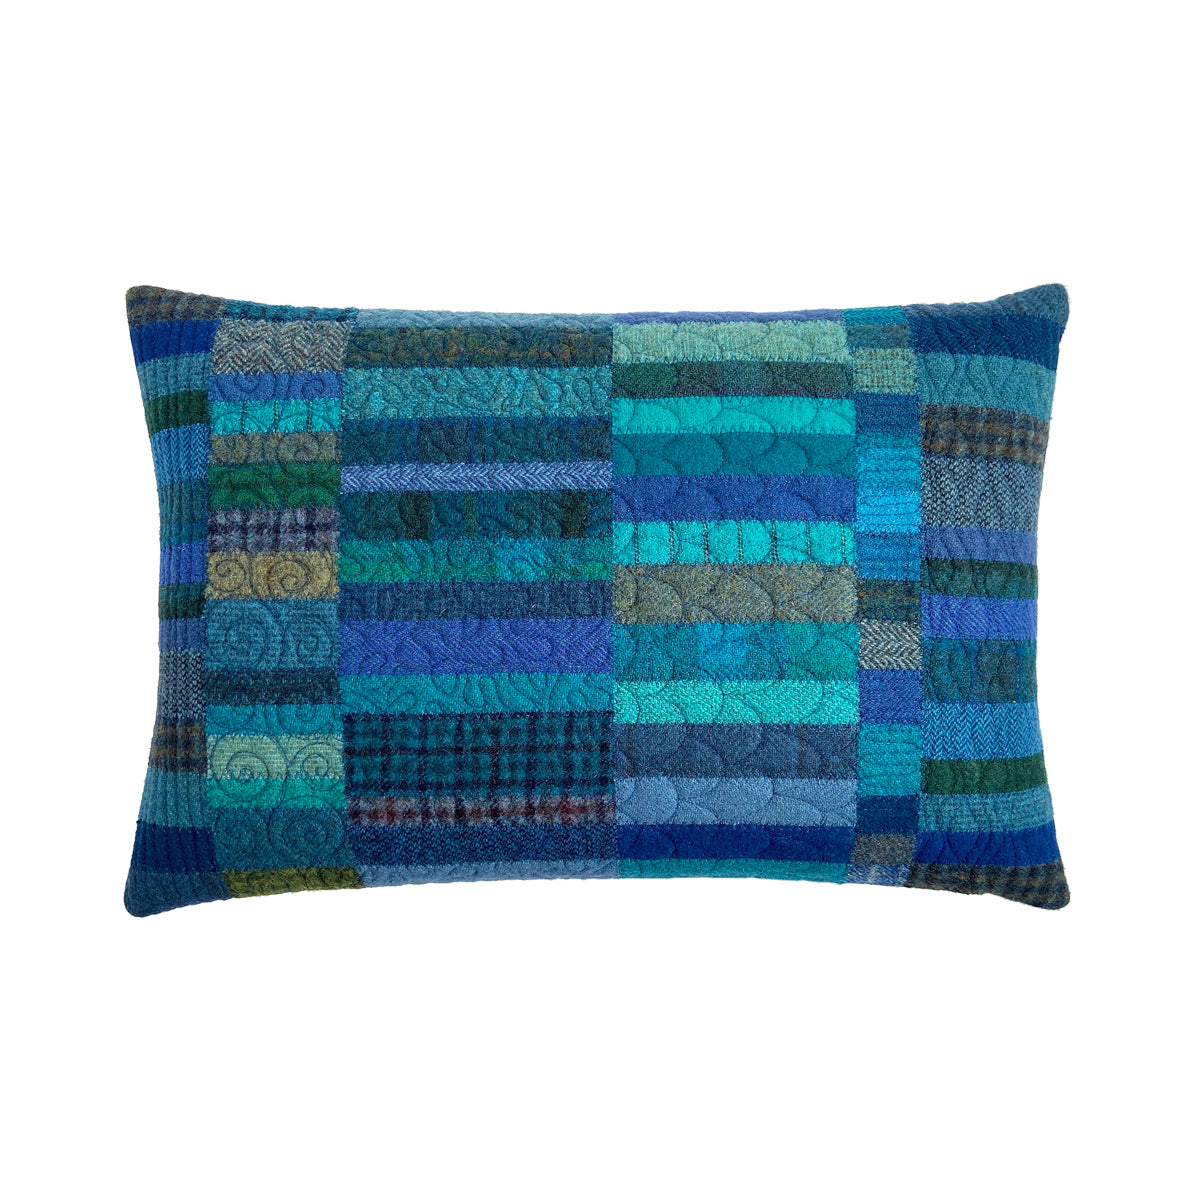 NE 41st Avenue Cushion • 12x18 D